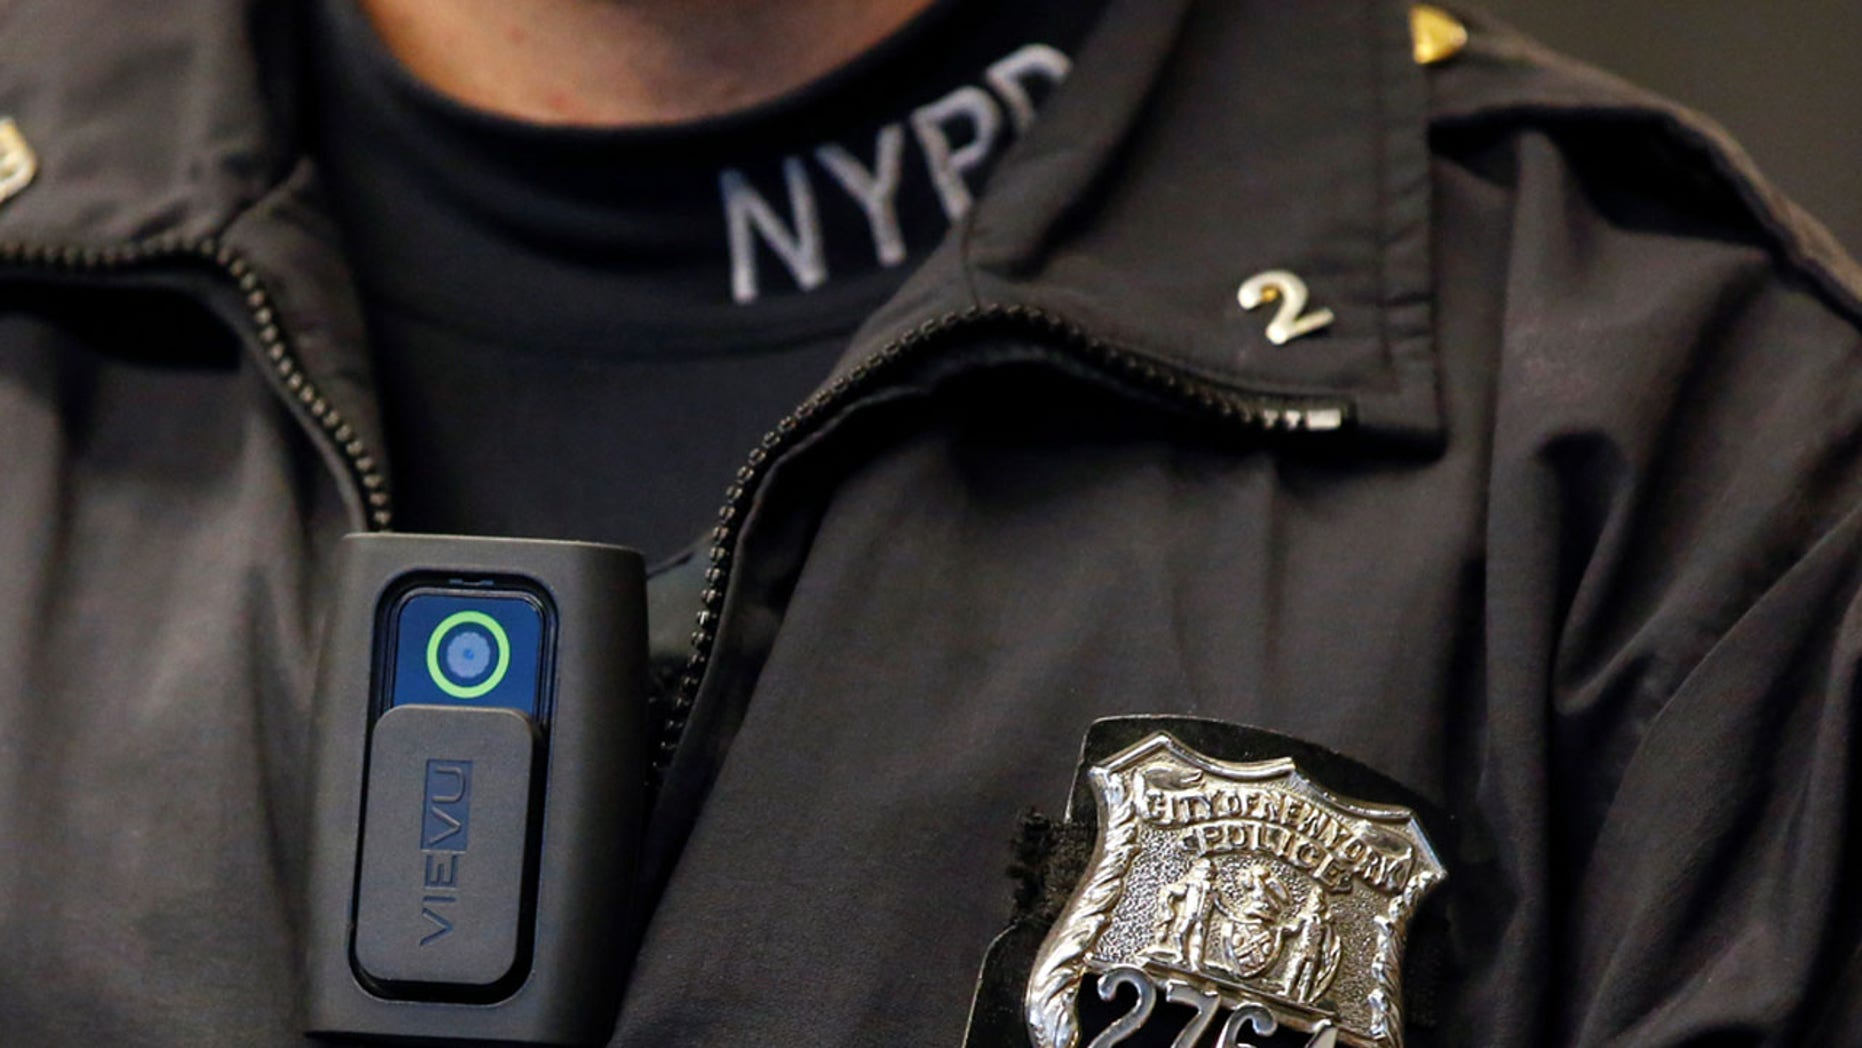 FILE PHOTO - A police body camera is seen on an officer during a news conference on the pilot program of body cameras involving 60 NYPD officers dubbed 'Big Brother' at the NYPD police academy in the Queens borough of New York, December 3, 2014.  REUTERS/Shannon Stapleton/File Photo - RTX2Z30U